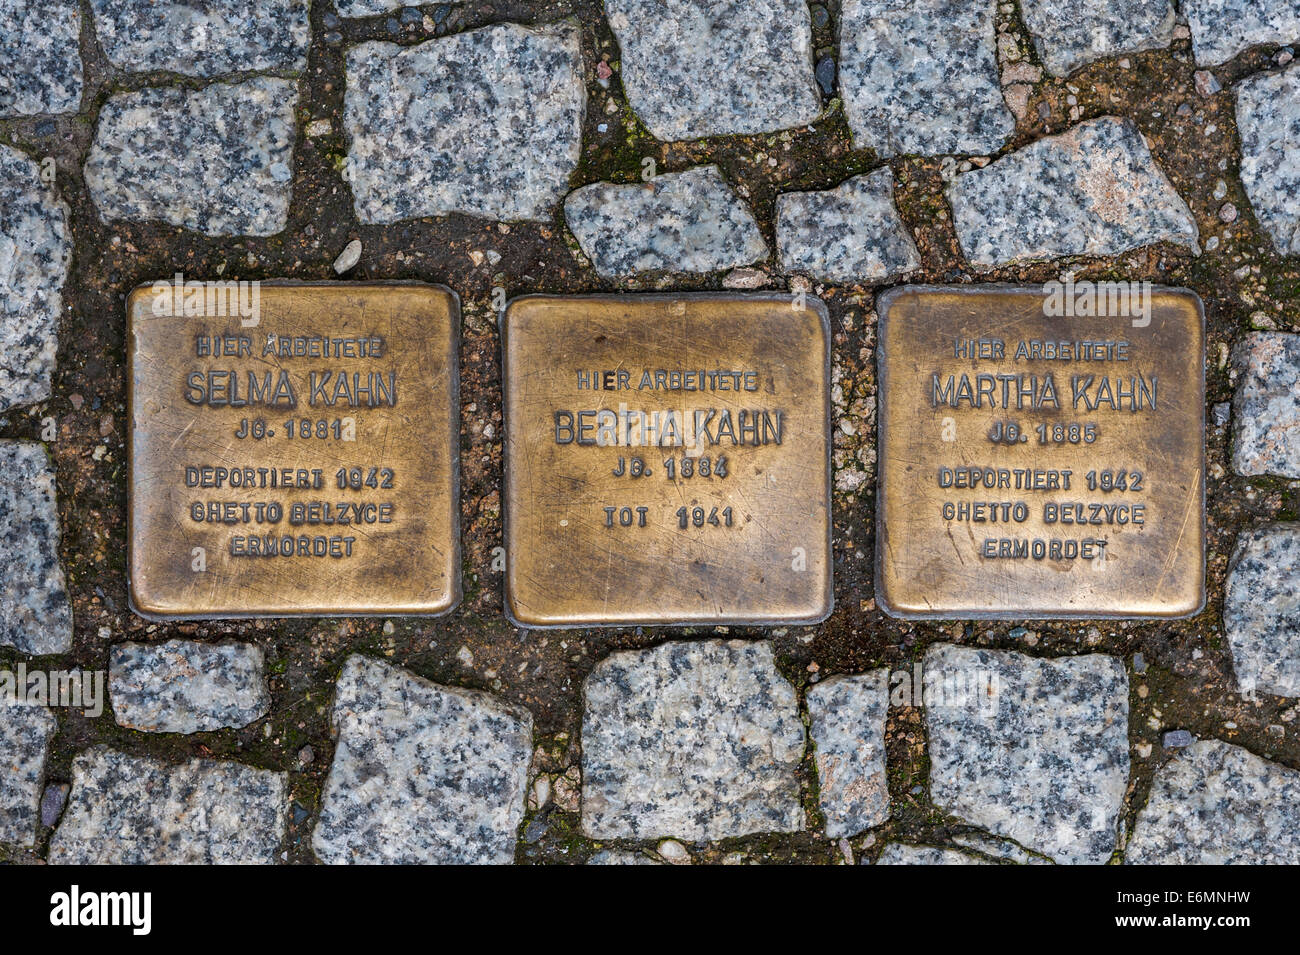 Stolperstein, stumbling blocks, in memory of the victims of the dictatorship in Nazi Germany, by artist Gunter Demnig - Stock Image